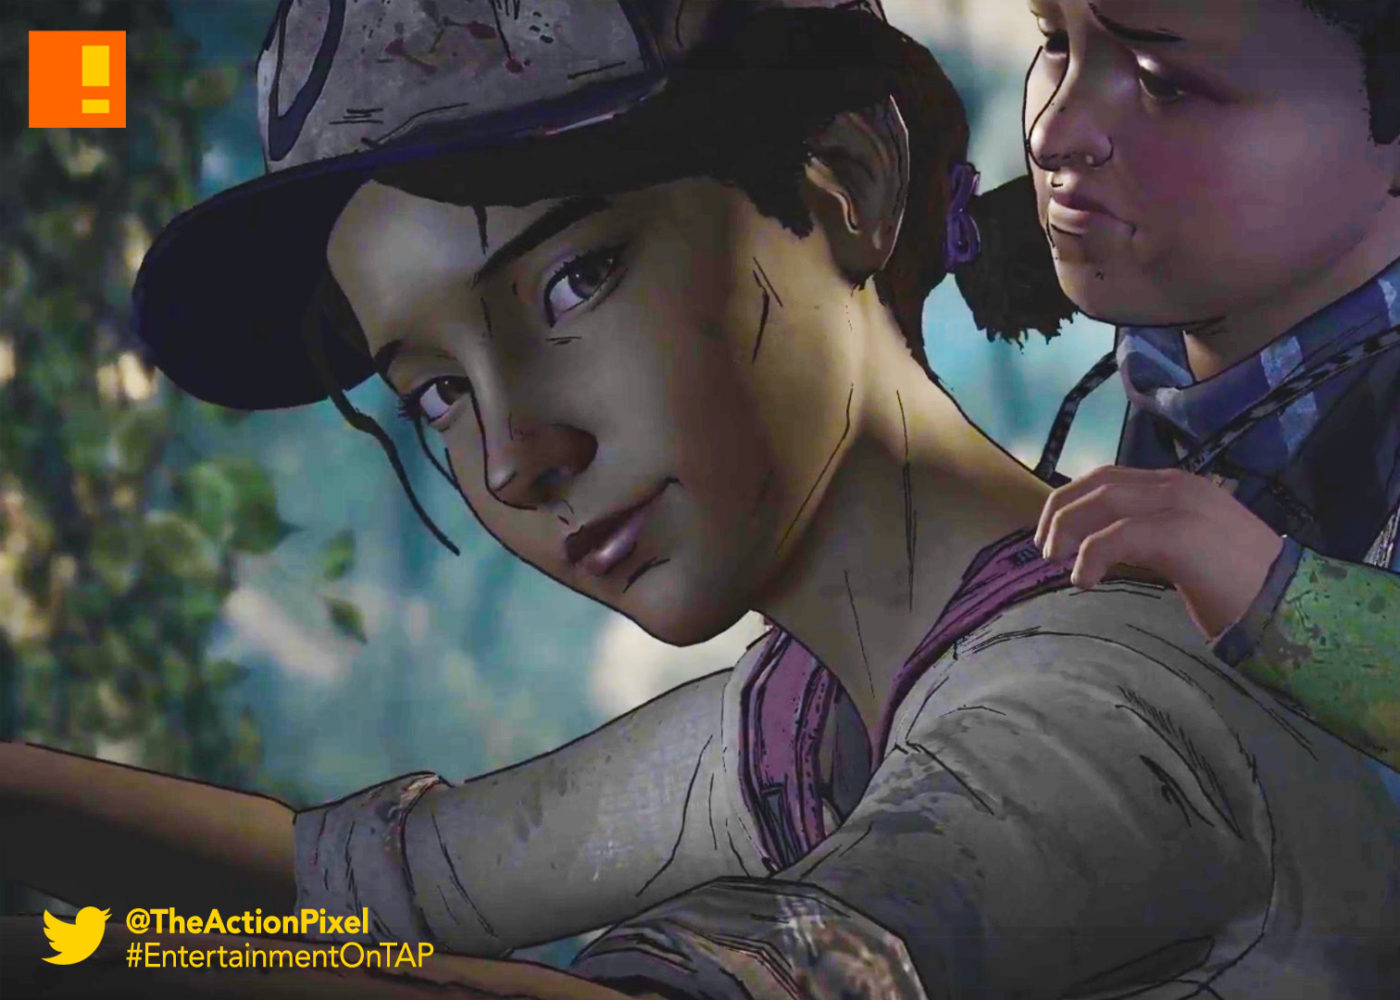 clementine, AJ, the walking dead, a new frontier, the telltale series, telltale games, skybound, the action pixel, image comics, entertainment on tap, series, episode 3,